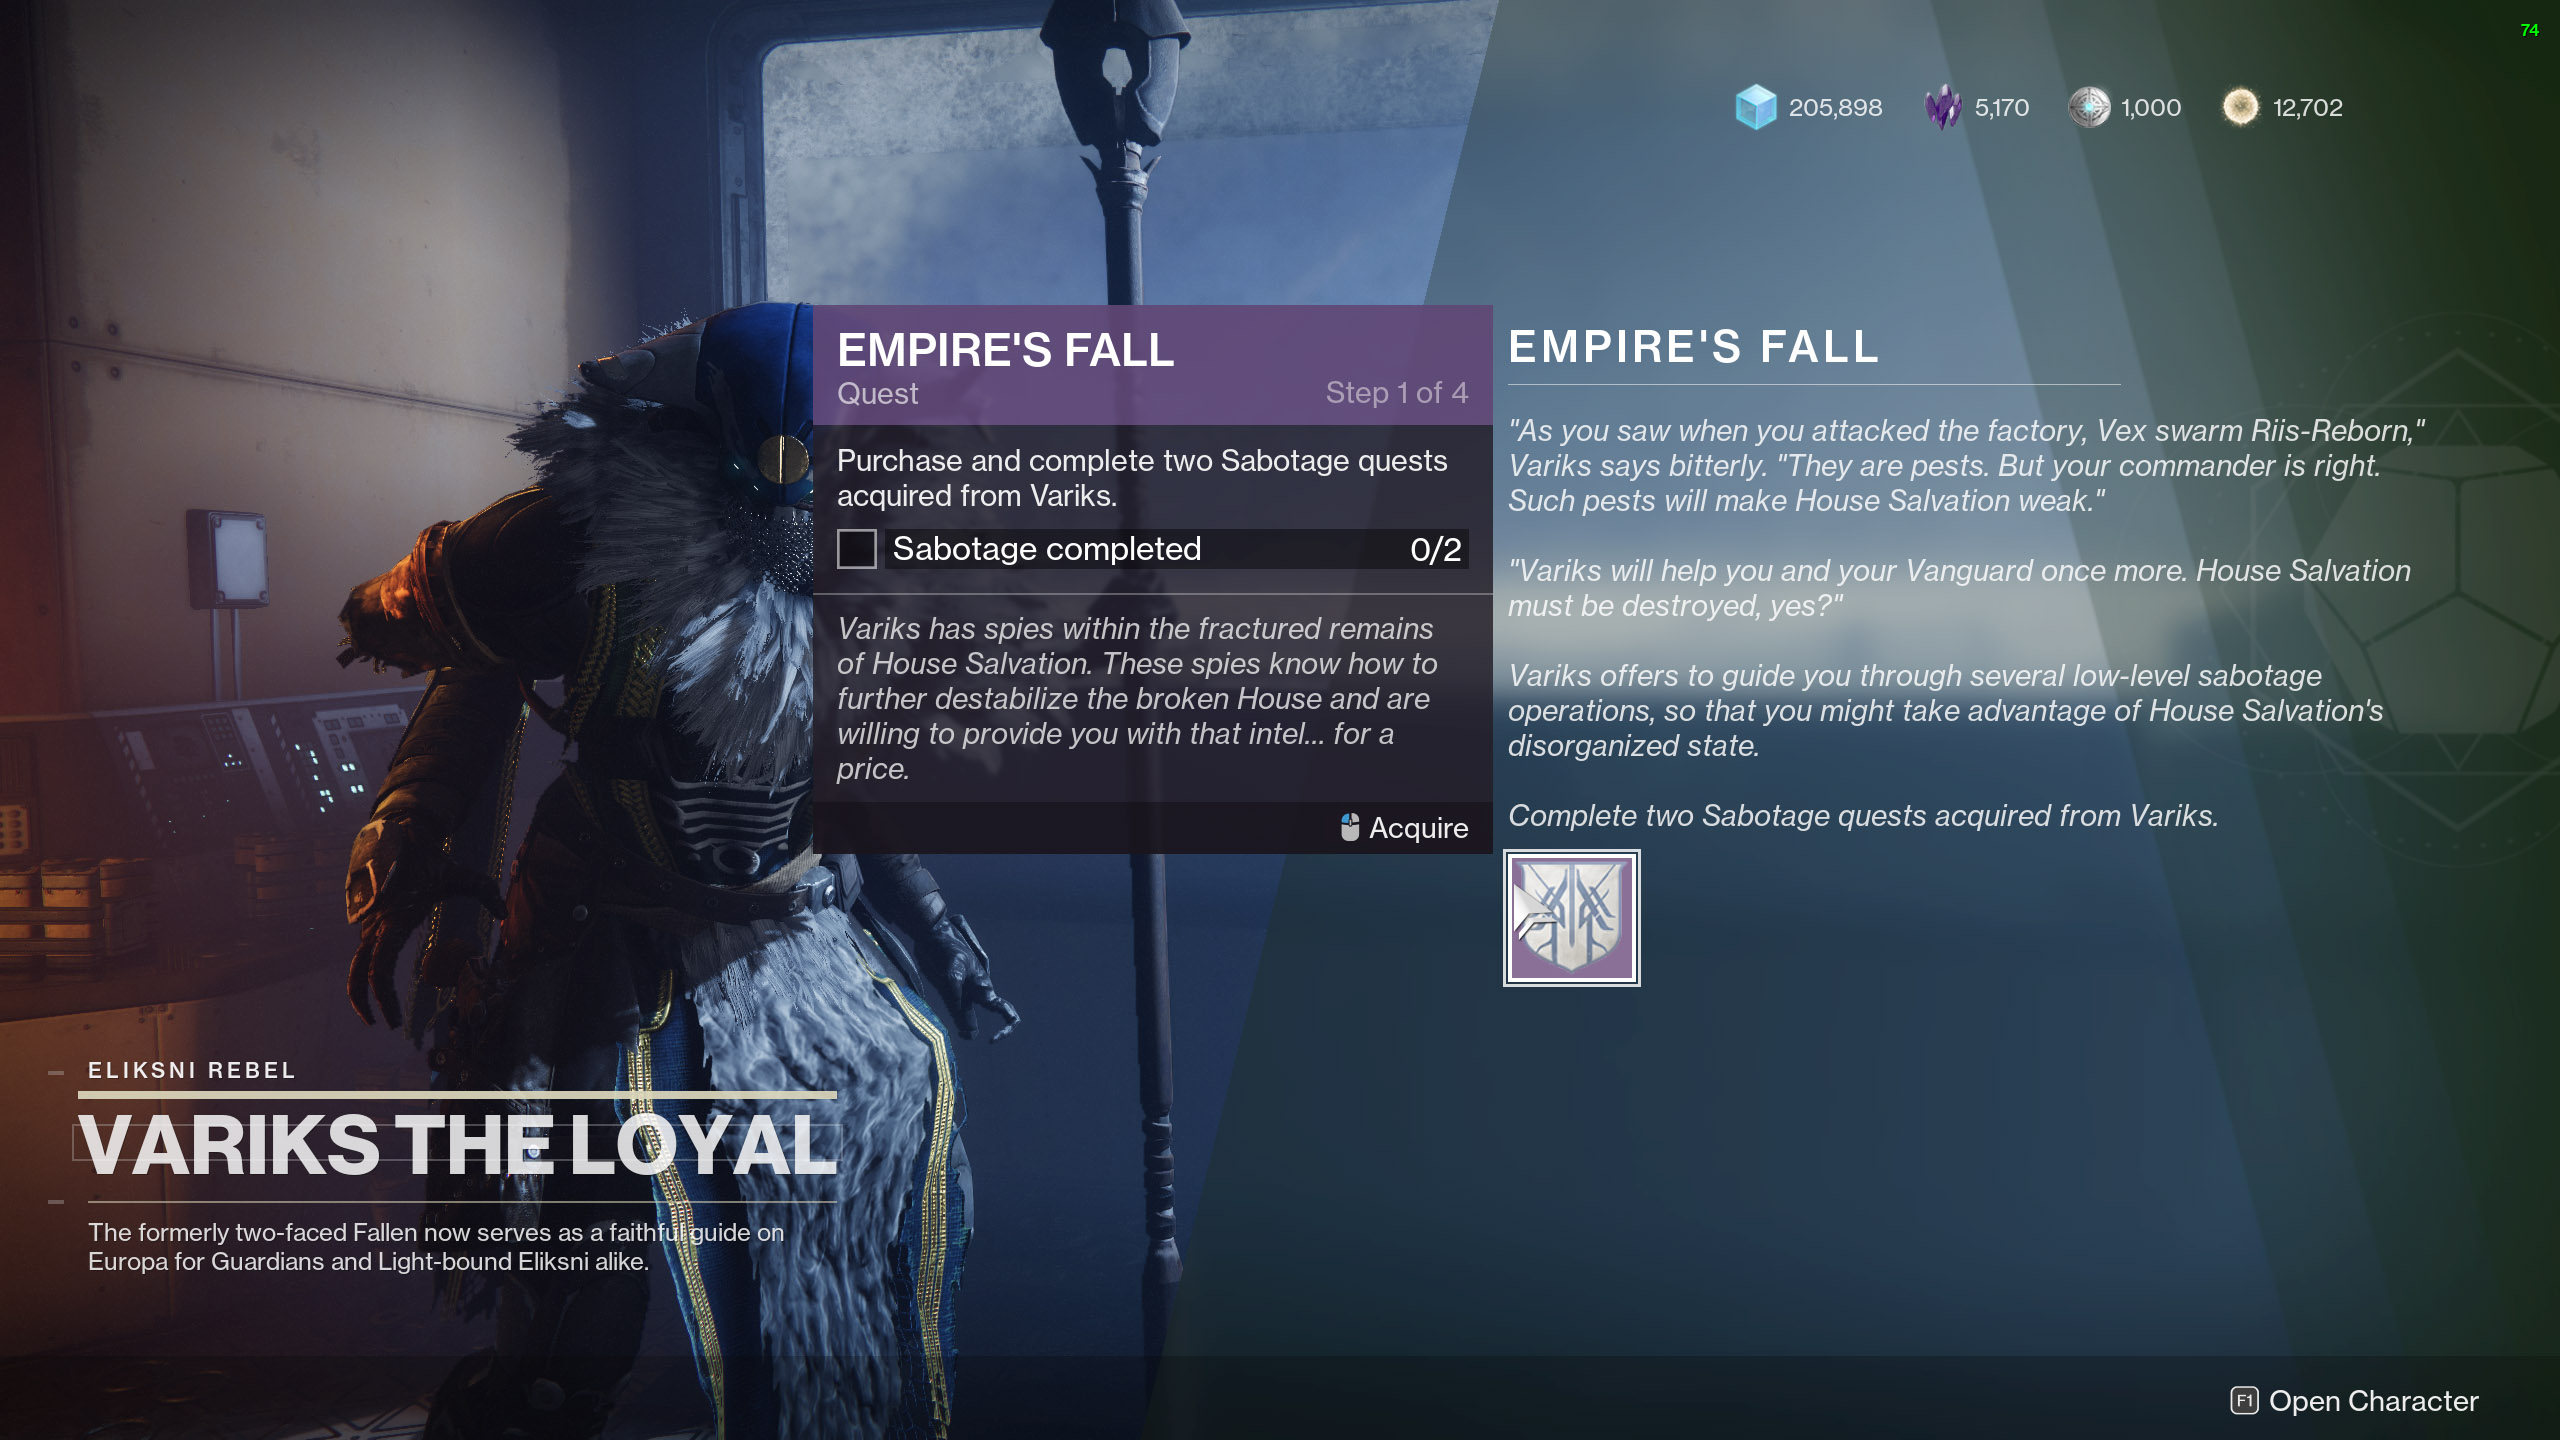 destiny 2 empires fall sabotage quests